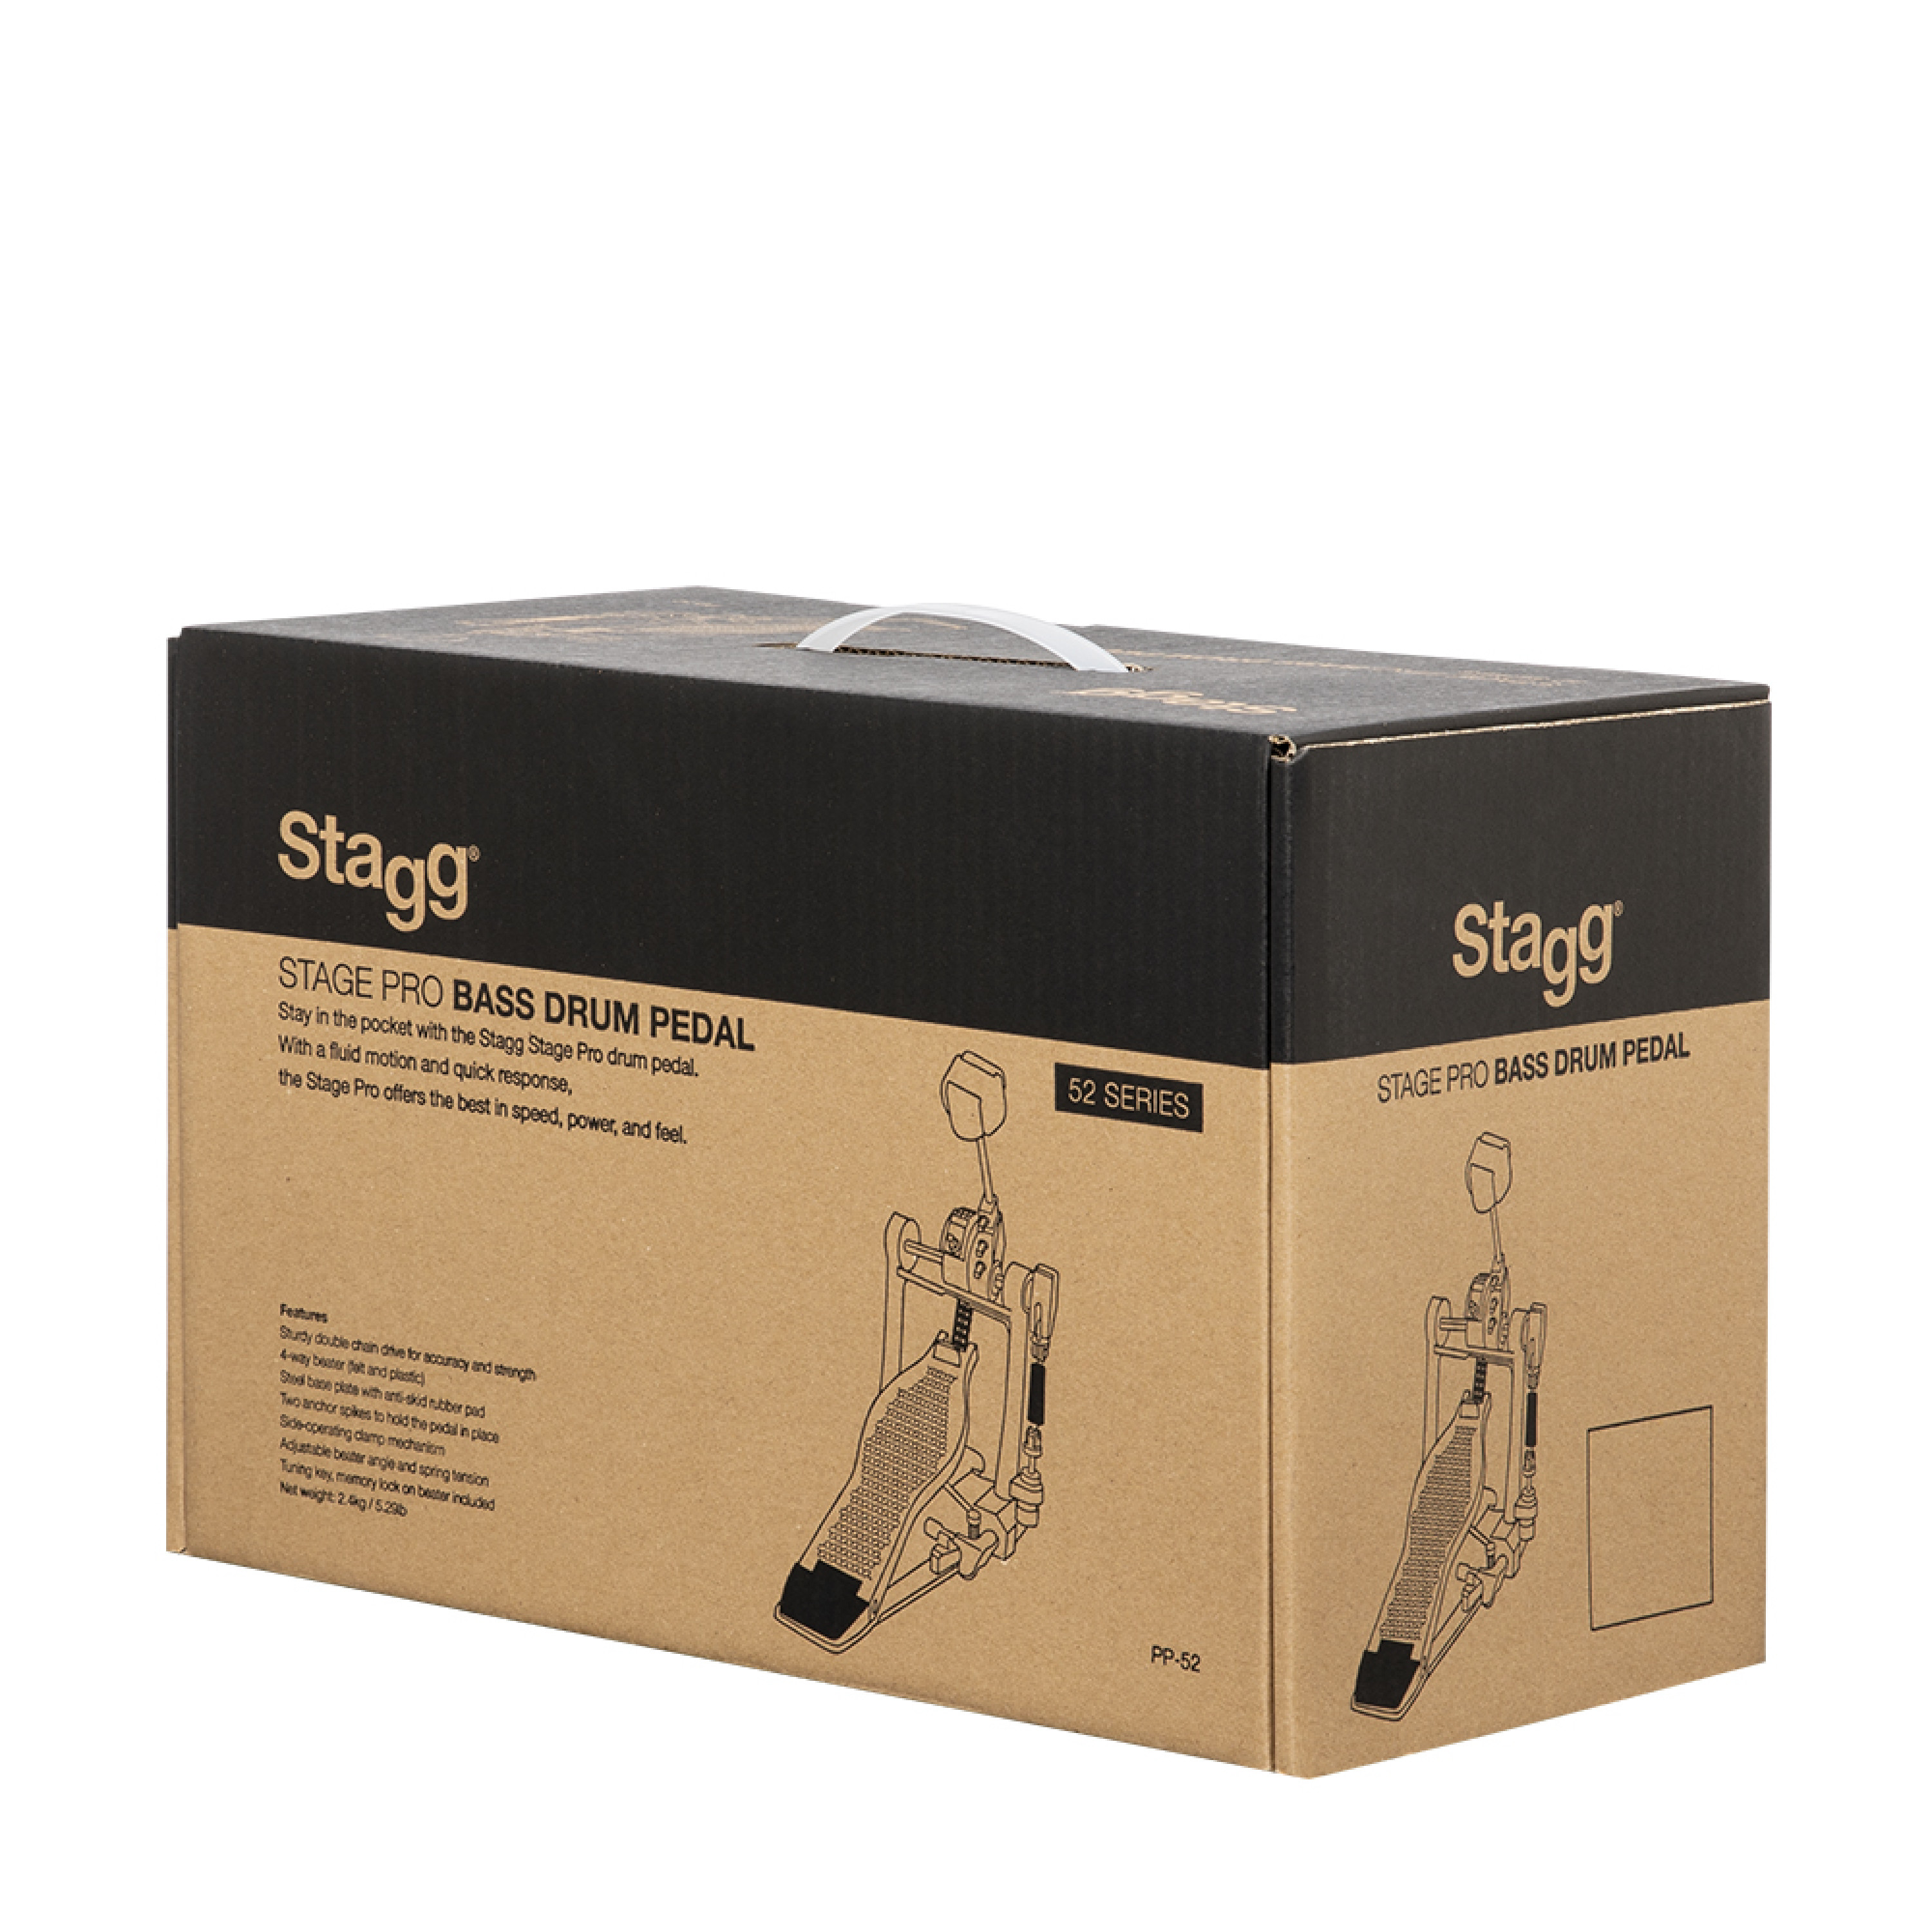 Stagg Double Bass Drum Pedal with chain PPD-52